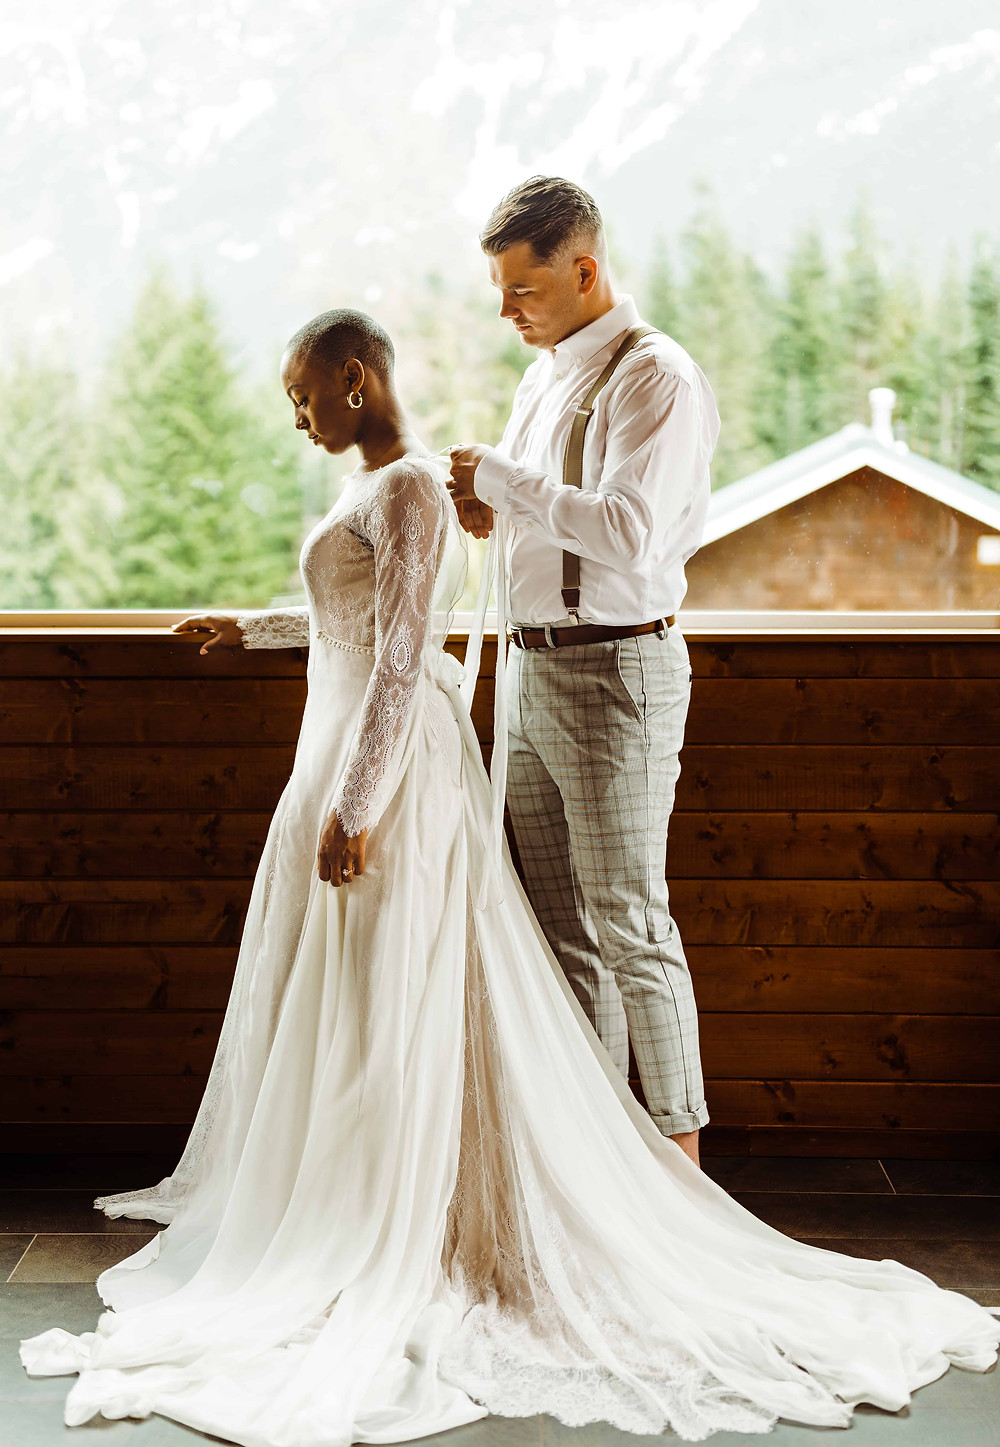 A man in suspenders ties the back of his bride's wedding dress, the two of them in front of a window with thoughtful expressions